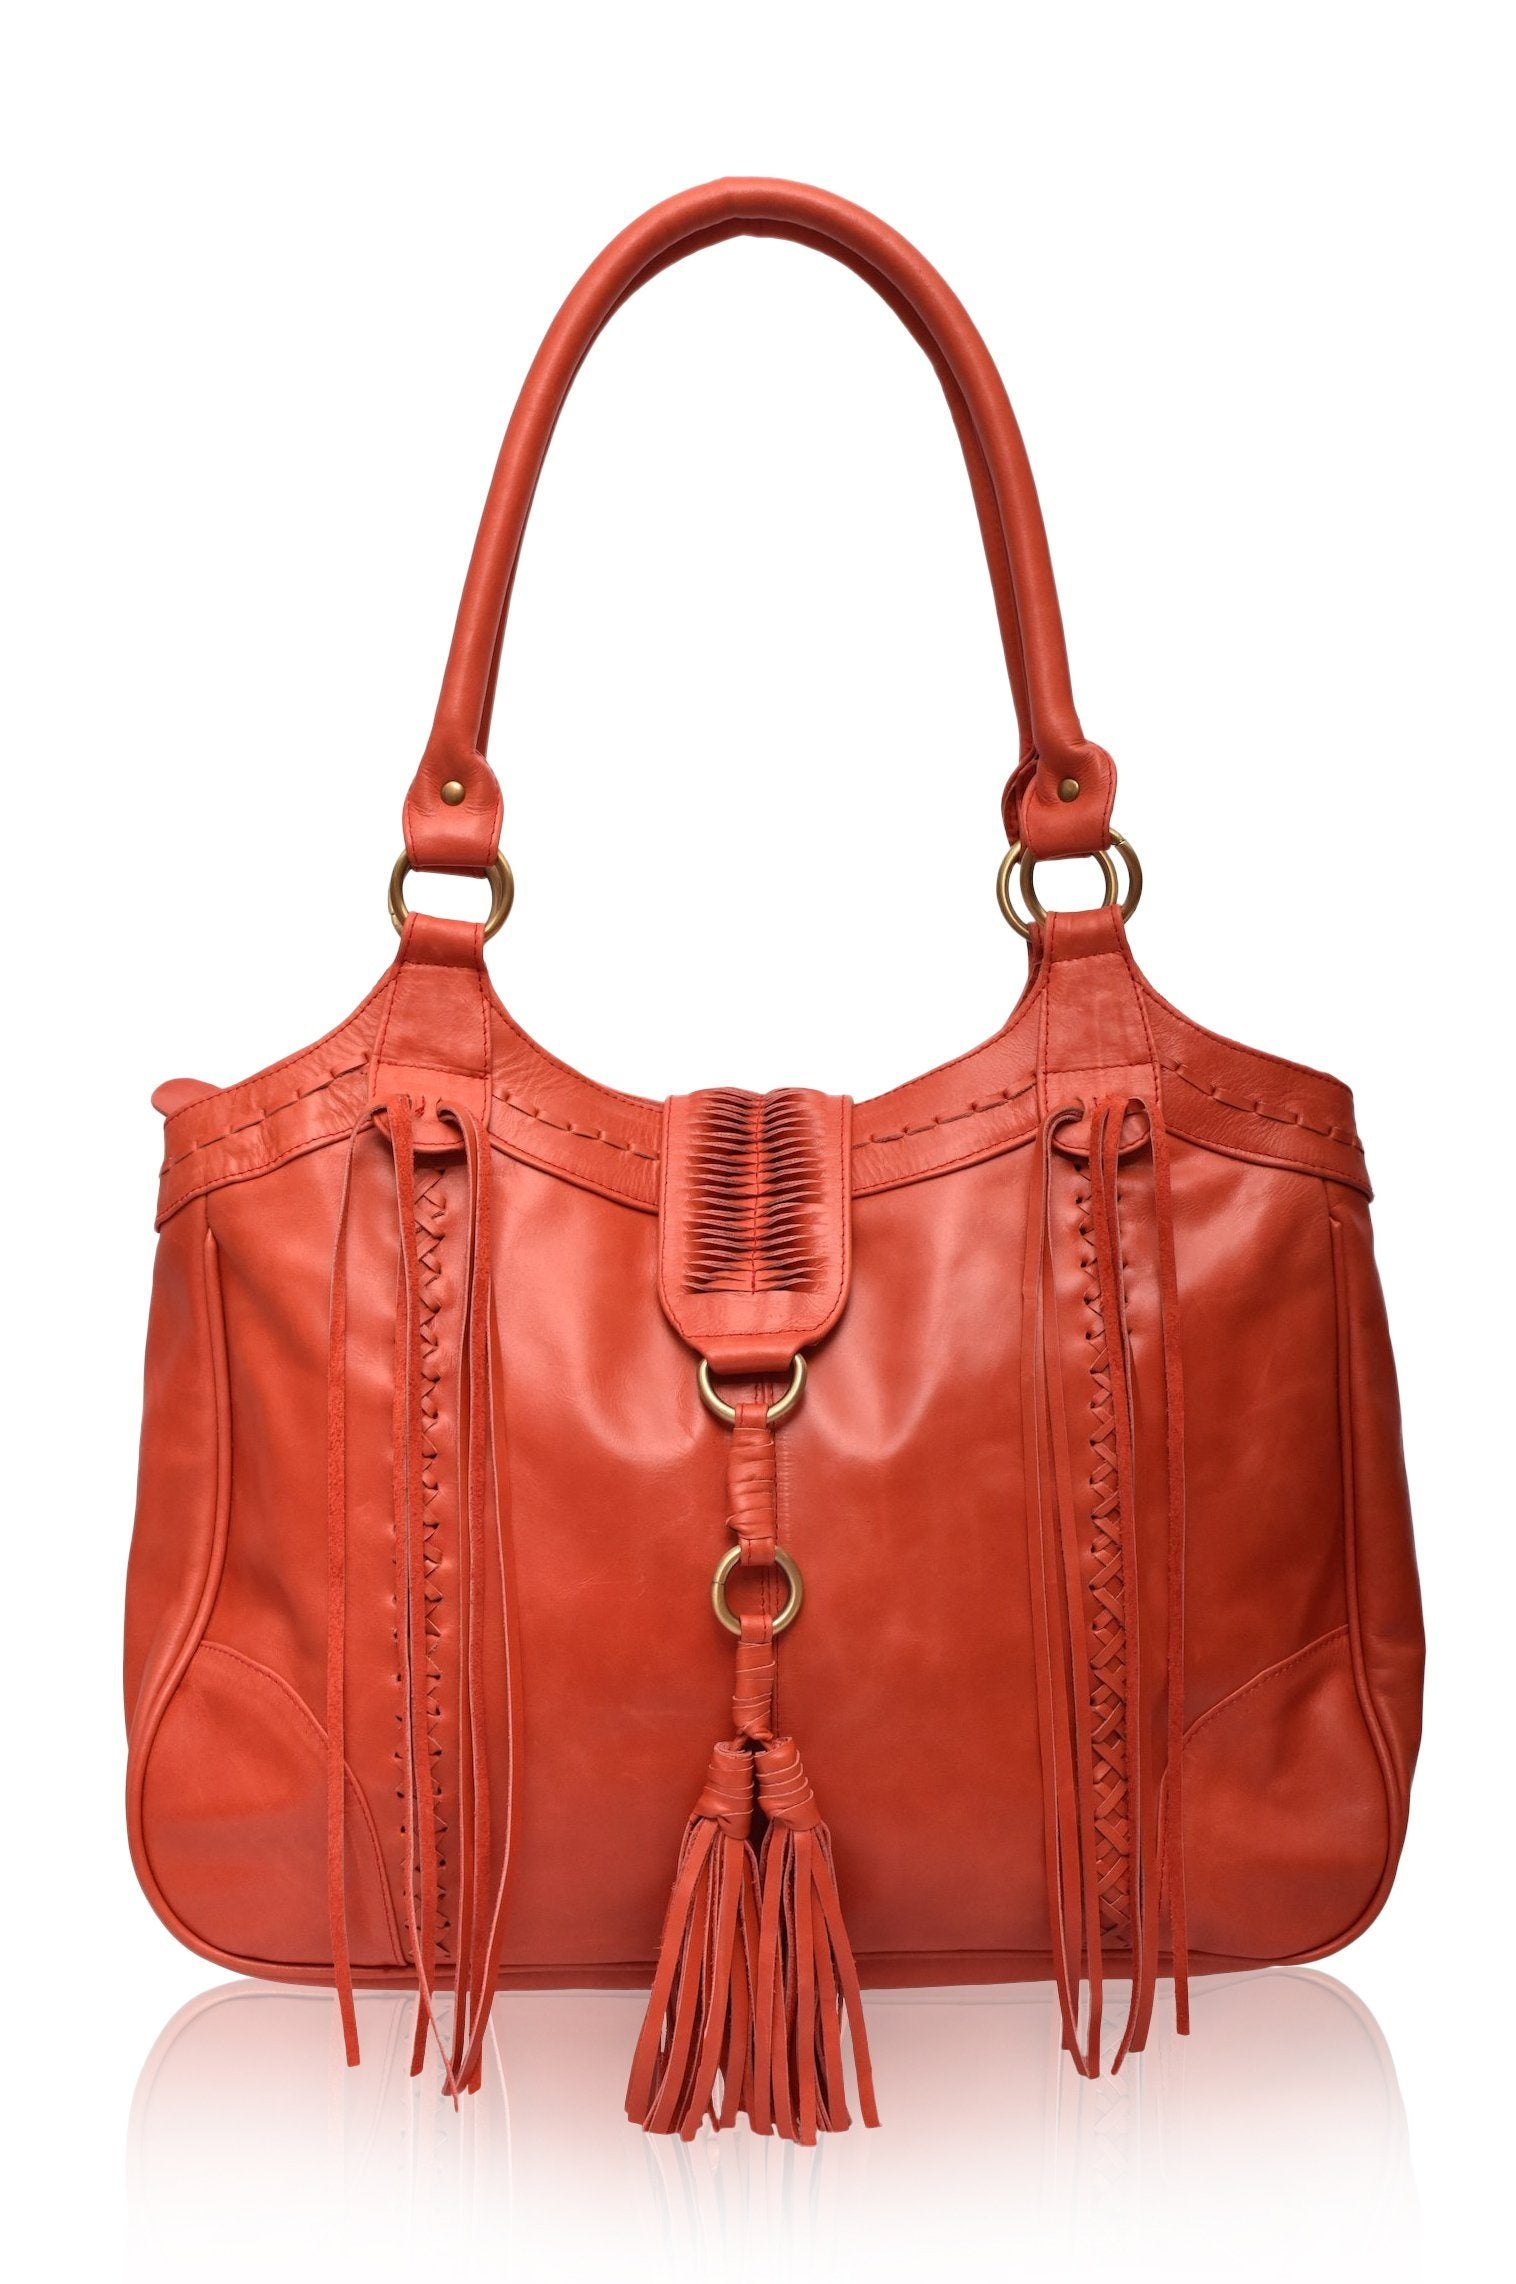 FREE SPIRIT. Handmade boho chic leather tote – ELF 7ffe977f31036